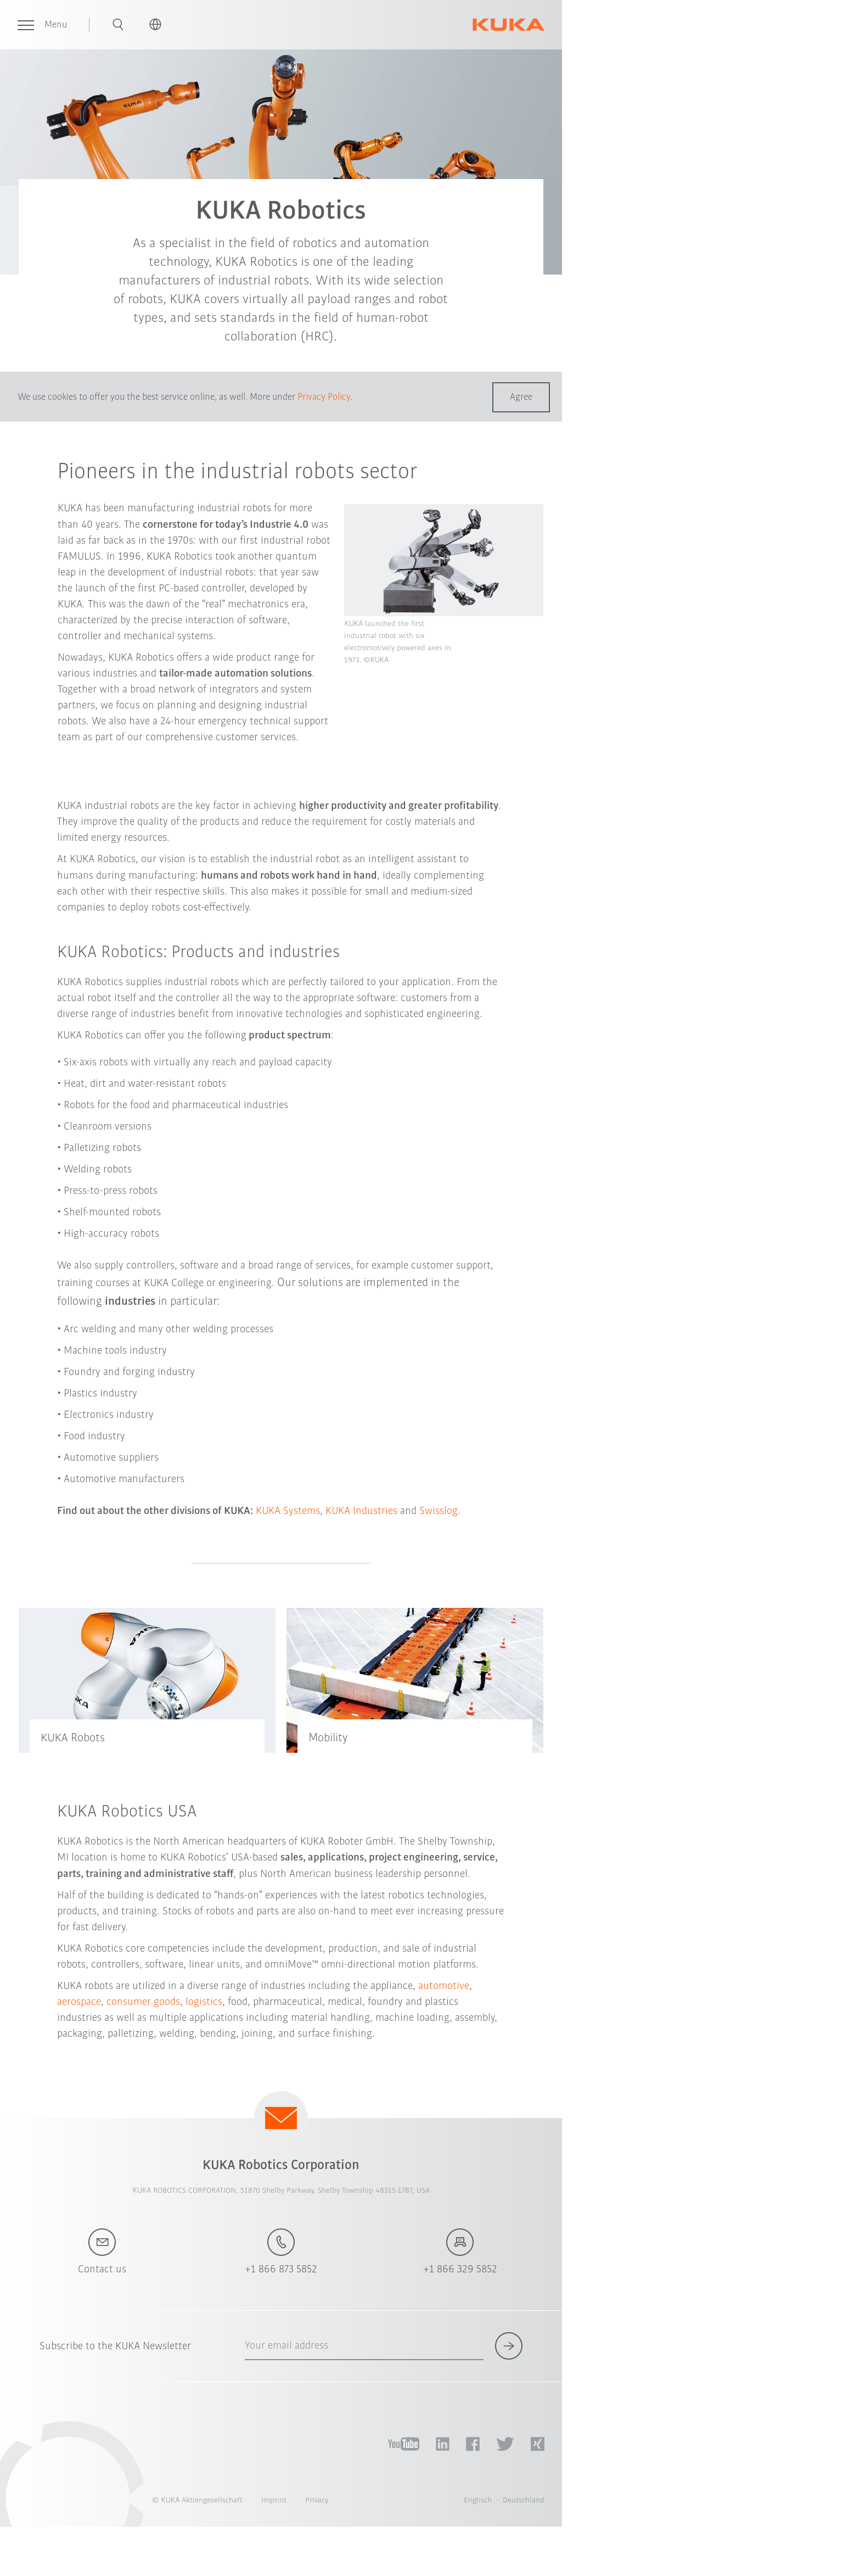 KUKA Roboter Competitors, Revenue and Employees - Owler Company Profile